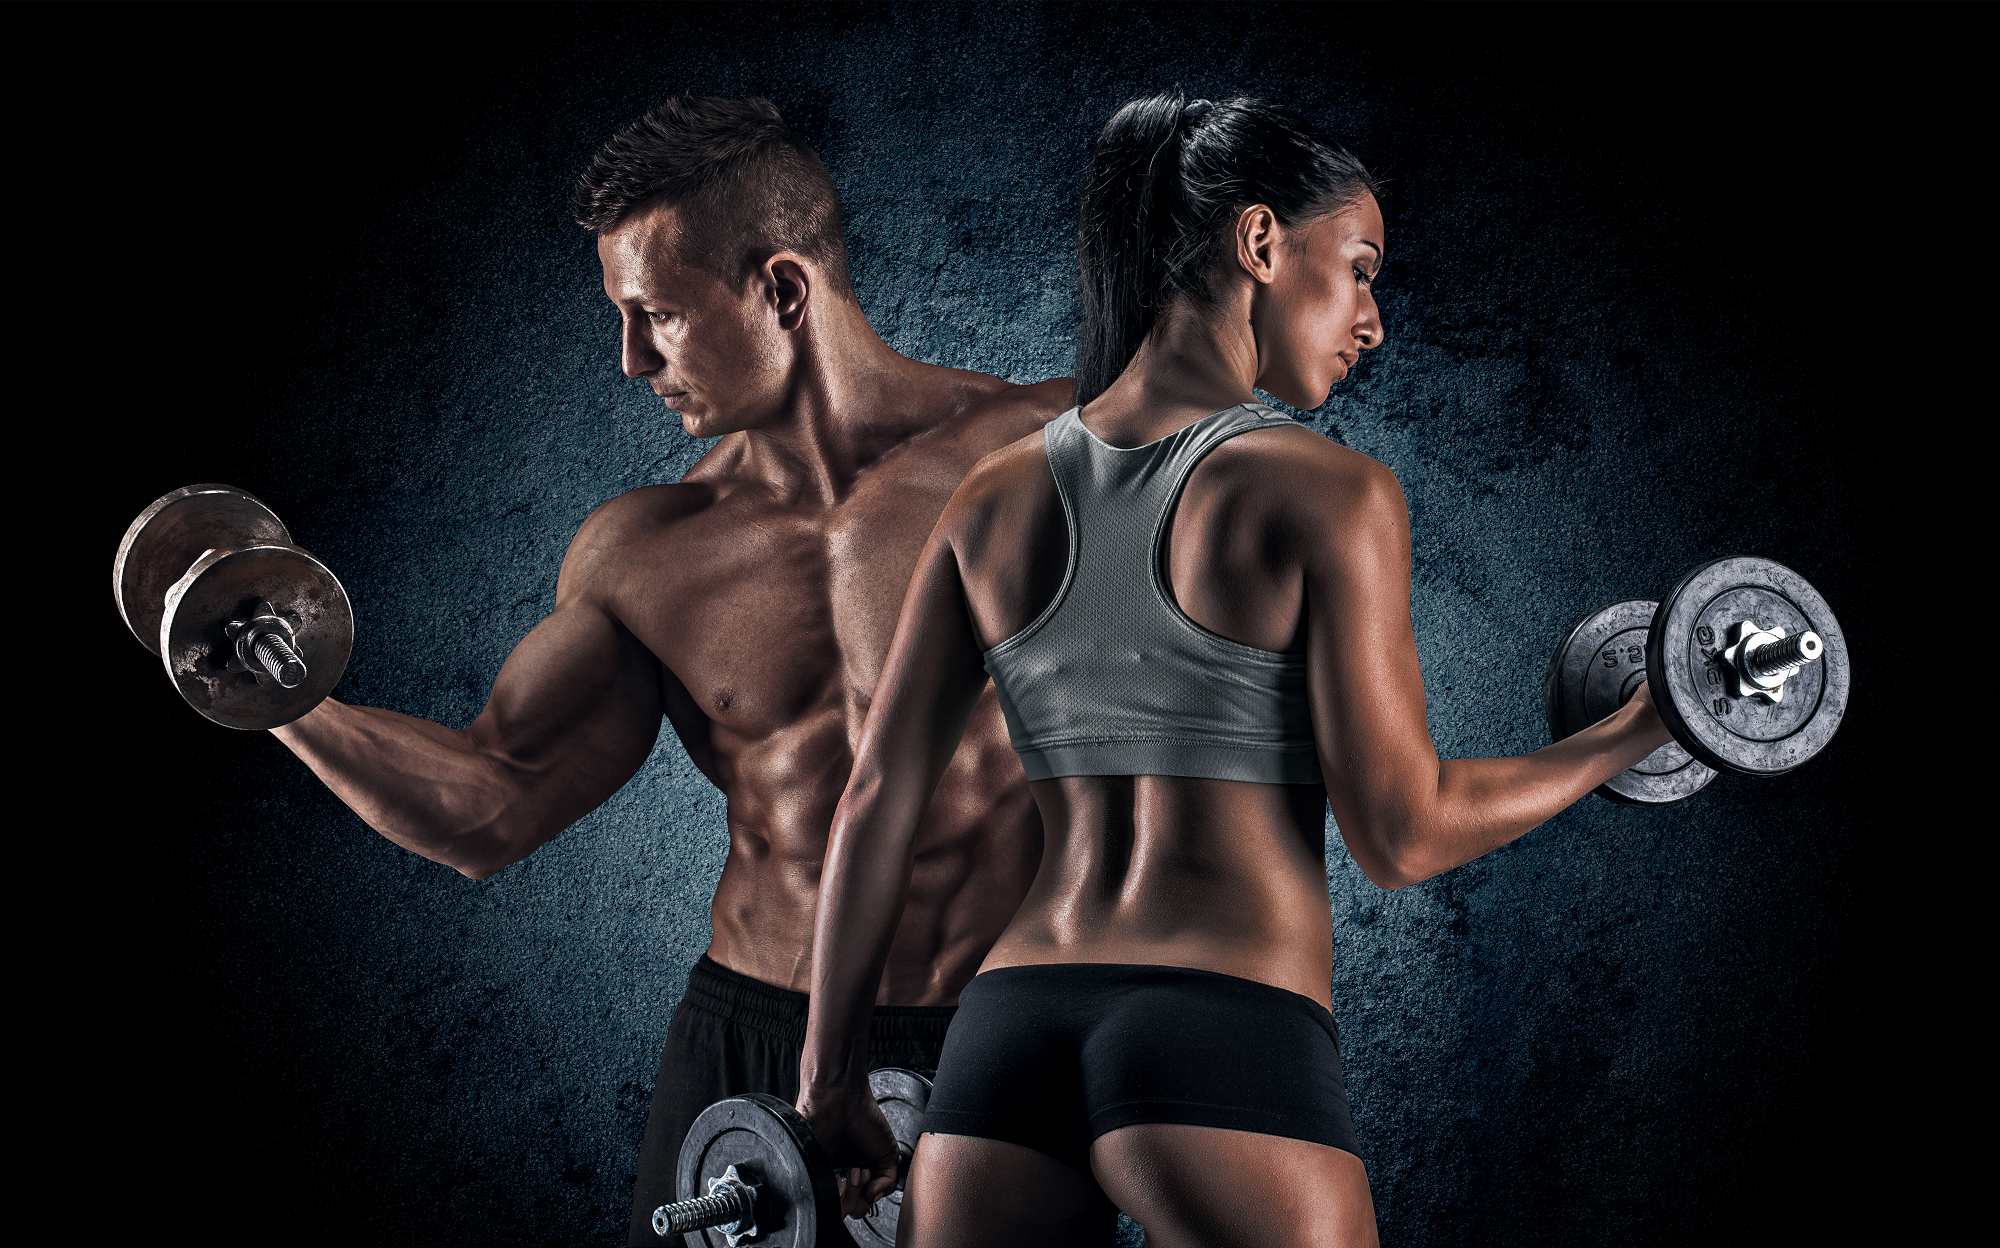 Tip: Why Men and Women Can't Train Together